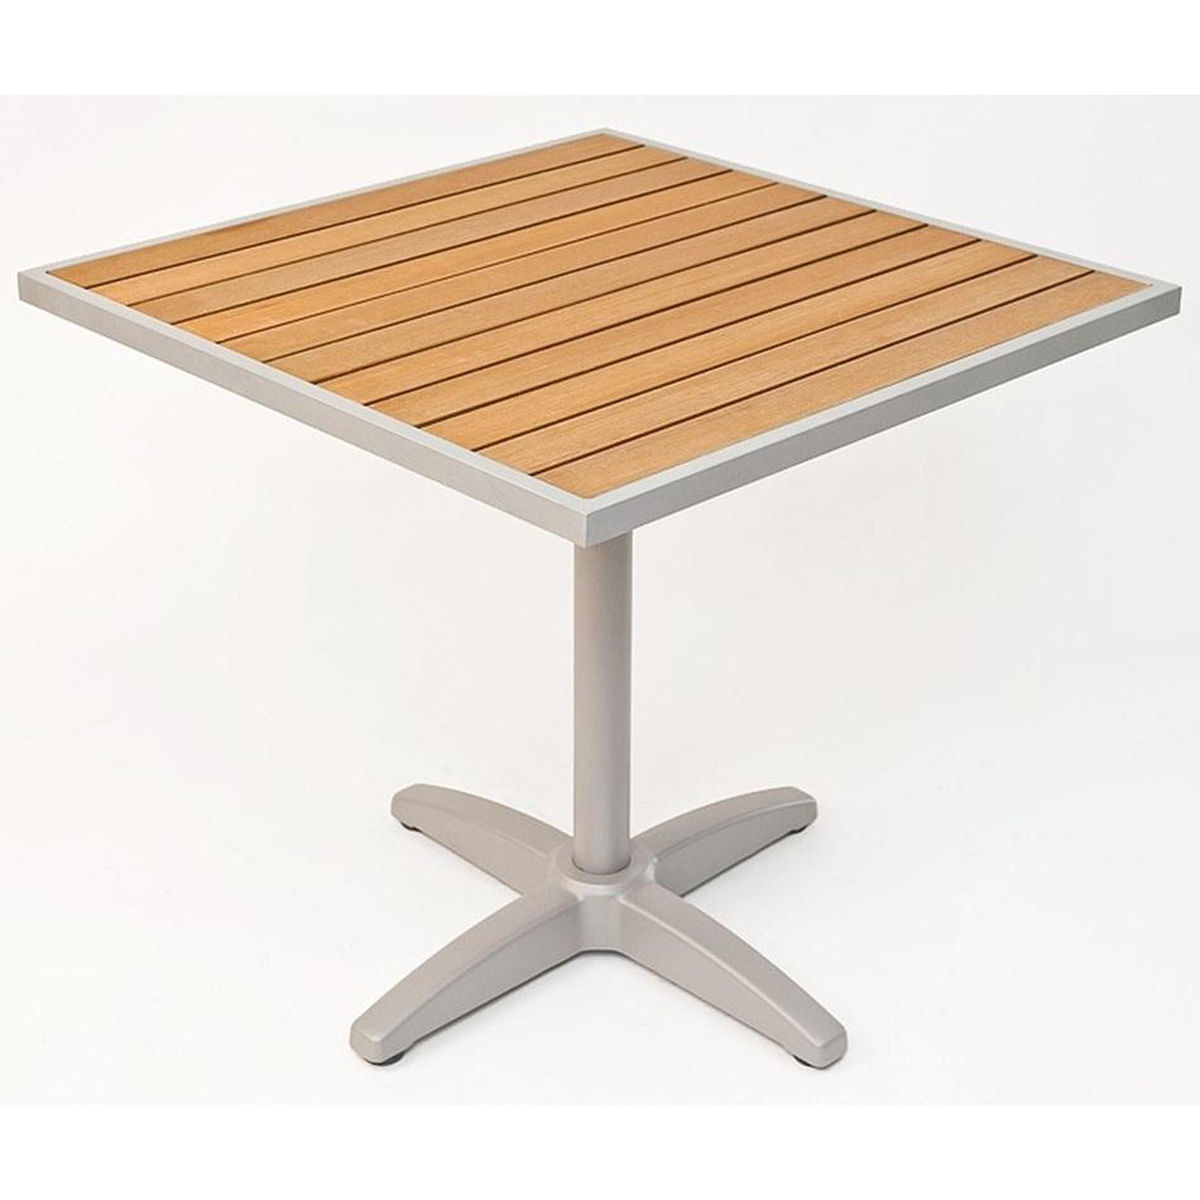 square teak dining table outdoor seating fls main end our synthetic top with silver base glass live wood slab kitchen baby rocking chair target trunk coffee large accent butler